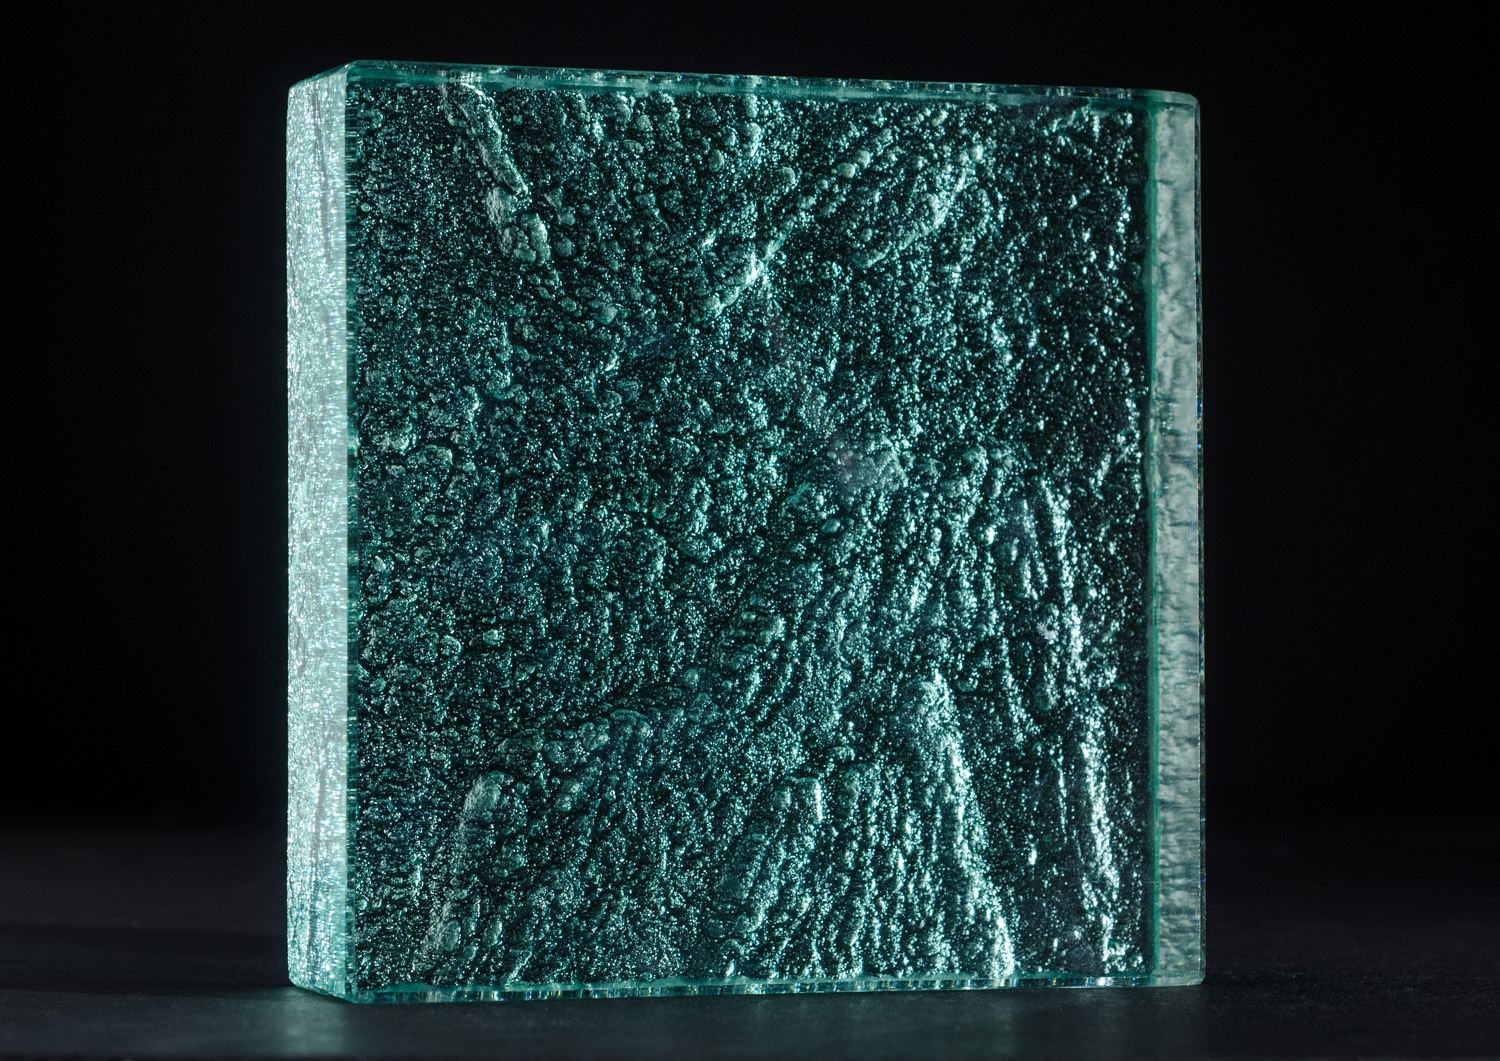 Jockimo ThickGlass™ Wooded texture